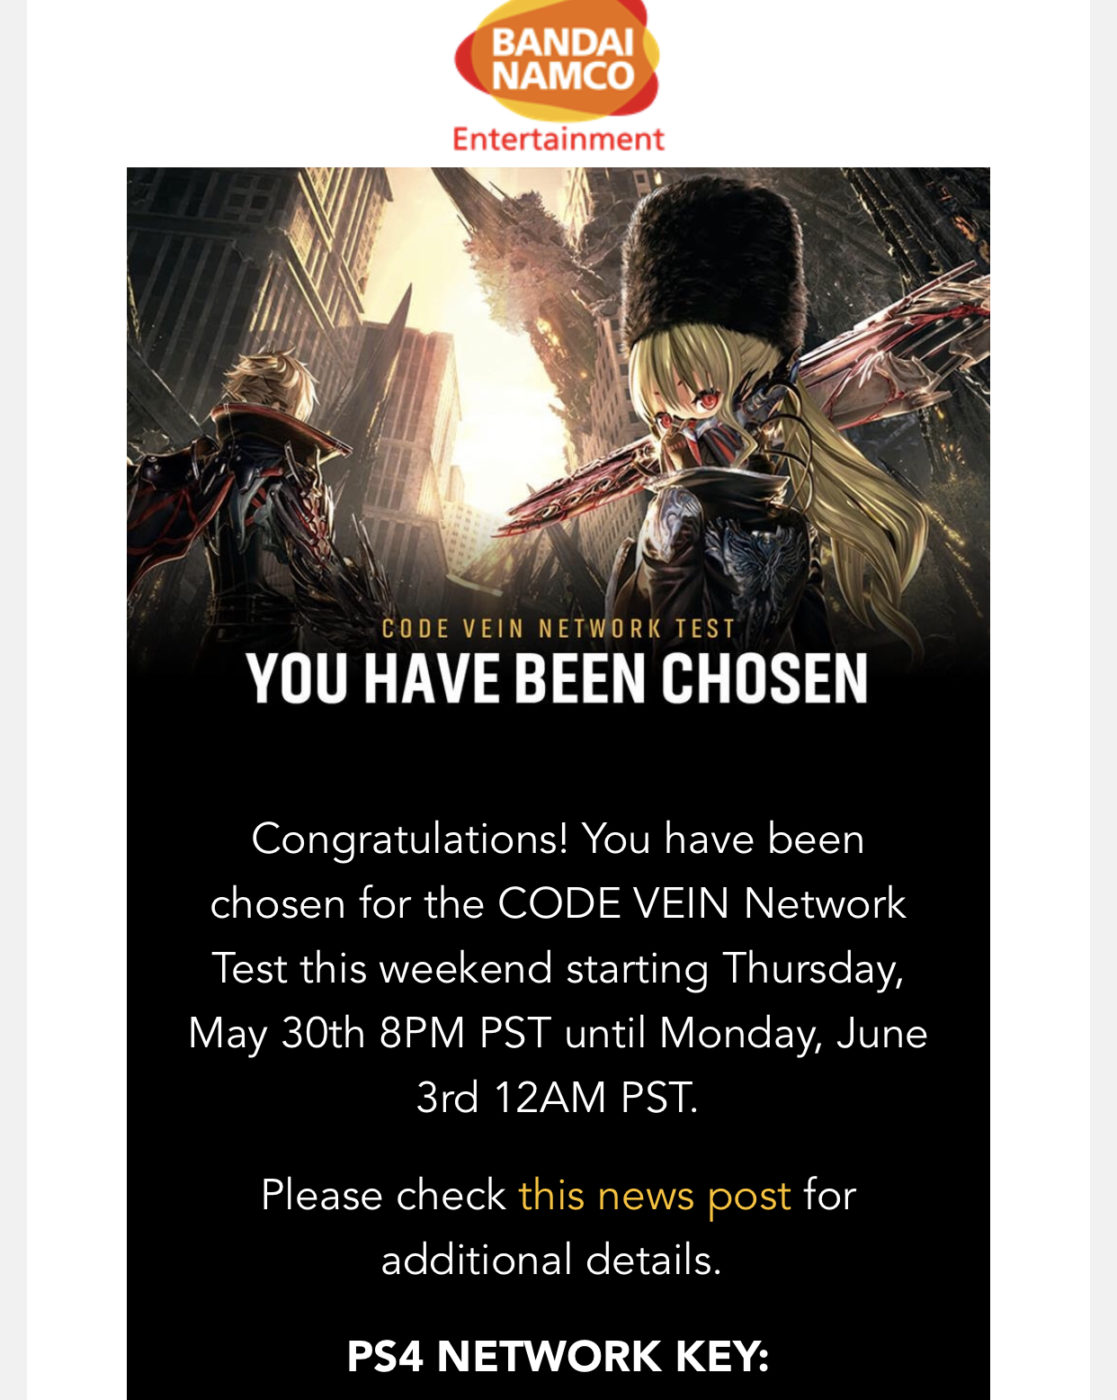 code vein network test invites, Code Vein Network Test Invites Are Now Being Sent Out, Behind the Scenes Vid Released, MP1st, MP1st